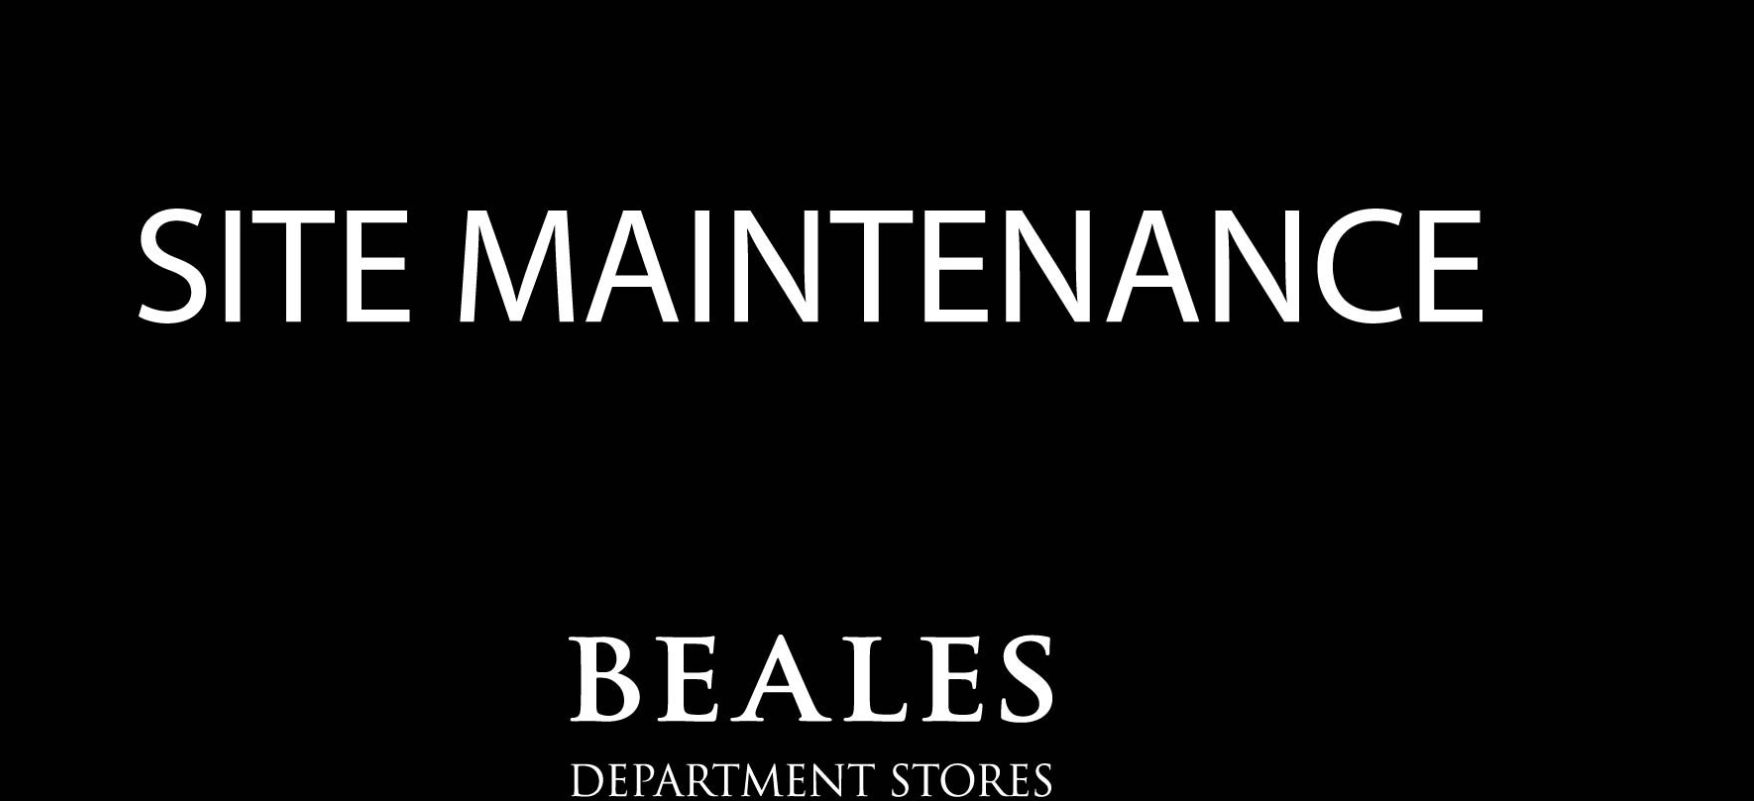 Beales website down amid reports that administrators will be appointed today